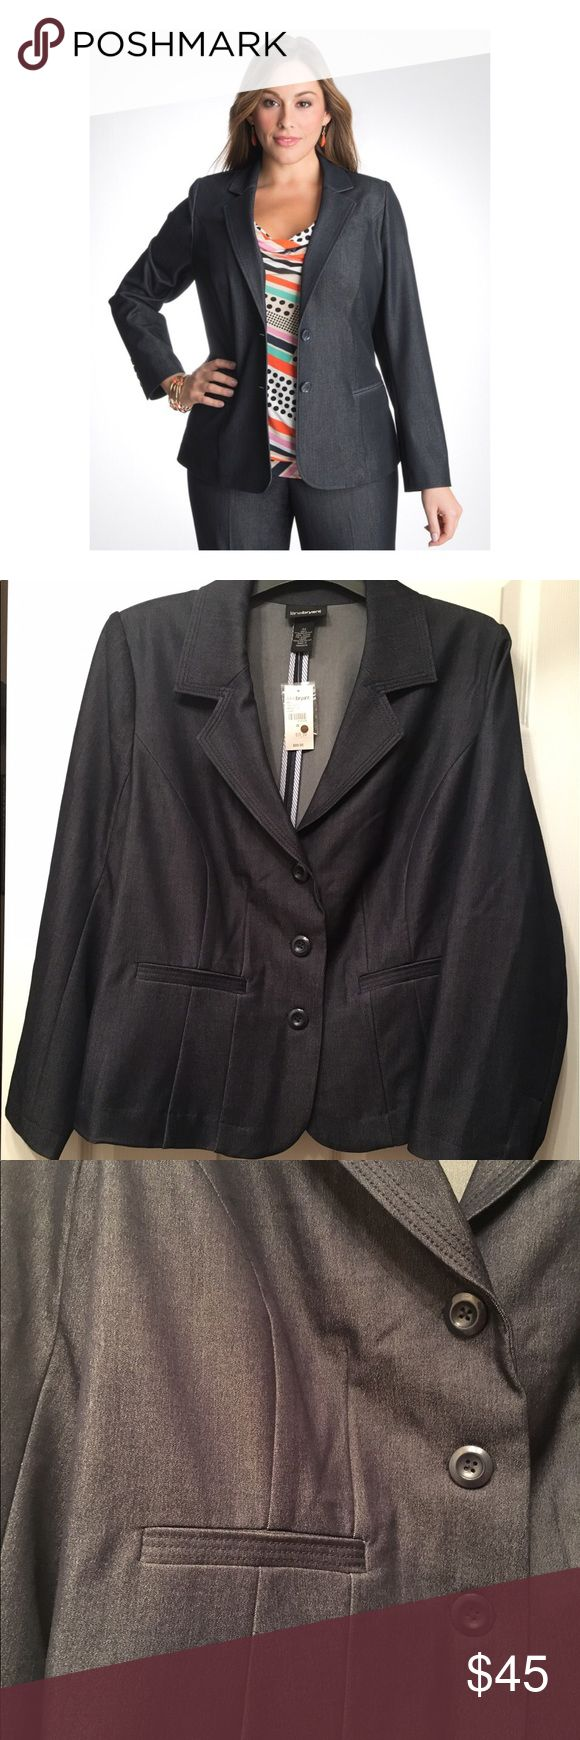 Plus Size Lane Bryant Suit Jacket This 3 button down dark blue jacket is in great condition! New with tags! Dress up or down. Perfect for any occasion. Padded shoulders, 2 slit faux pockets in front and wide lapel. 77% Polyester 20% Rayon 3% Spandex. Lining is 100% Polyester Lane Bryant Jackets & Coats